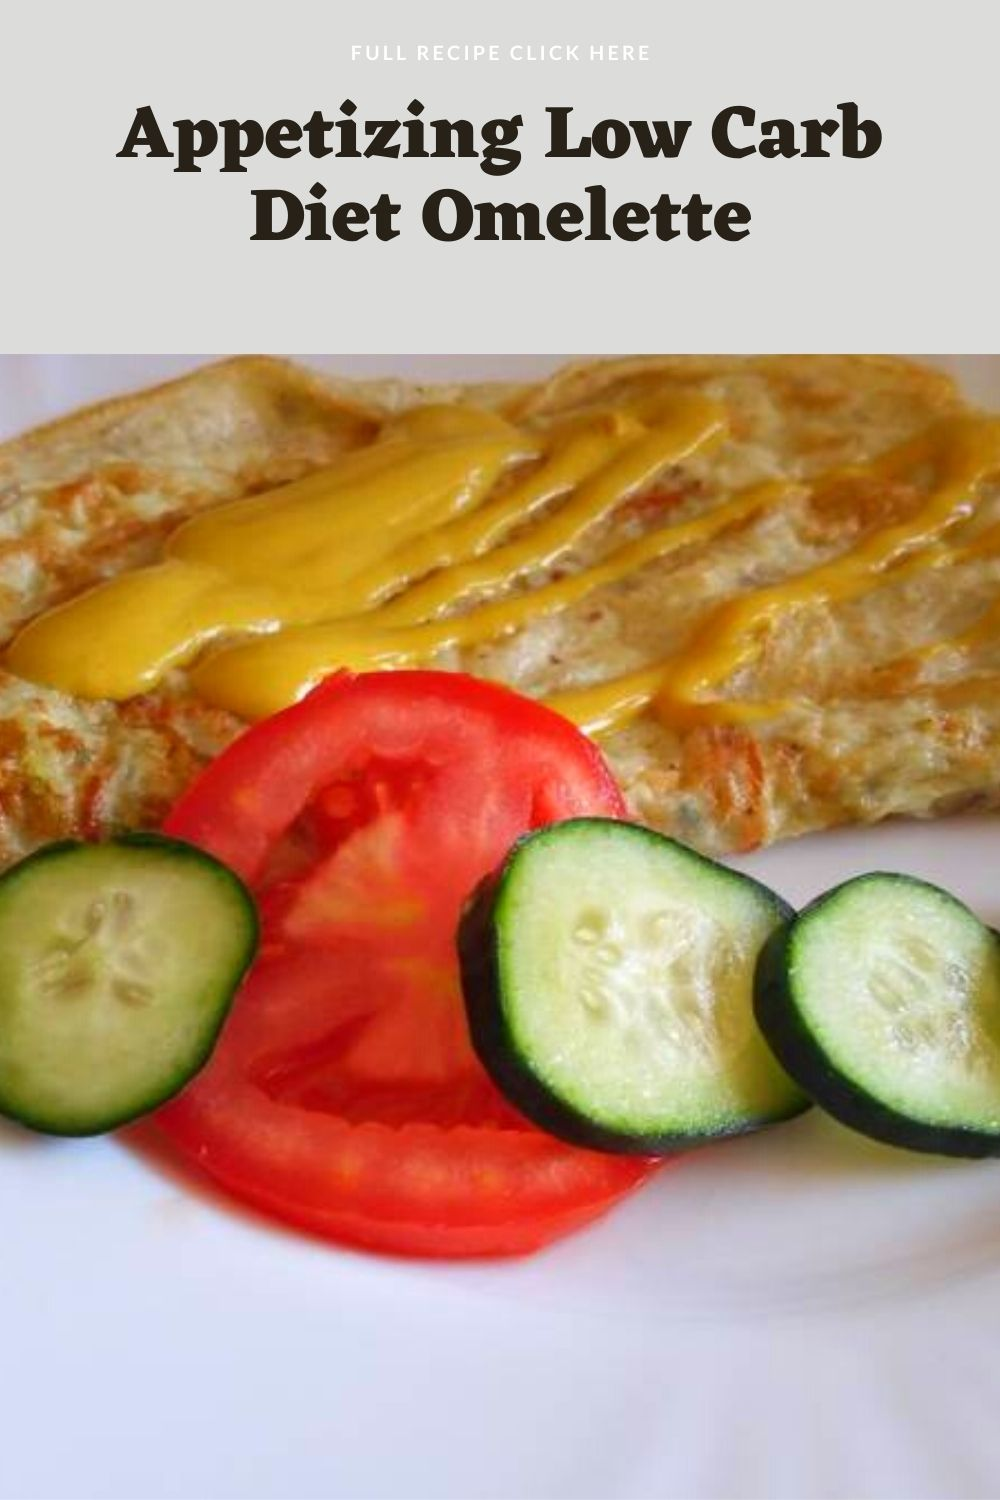 Appetizing Low Carb Diet Omelette